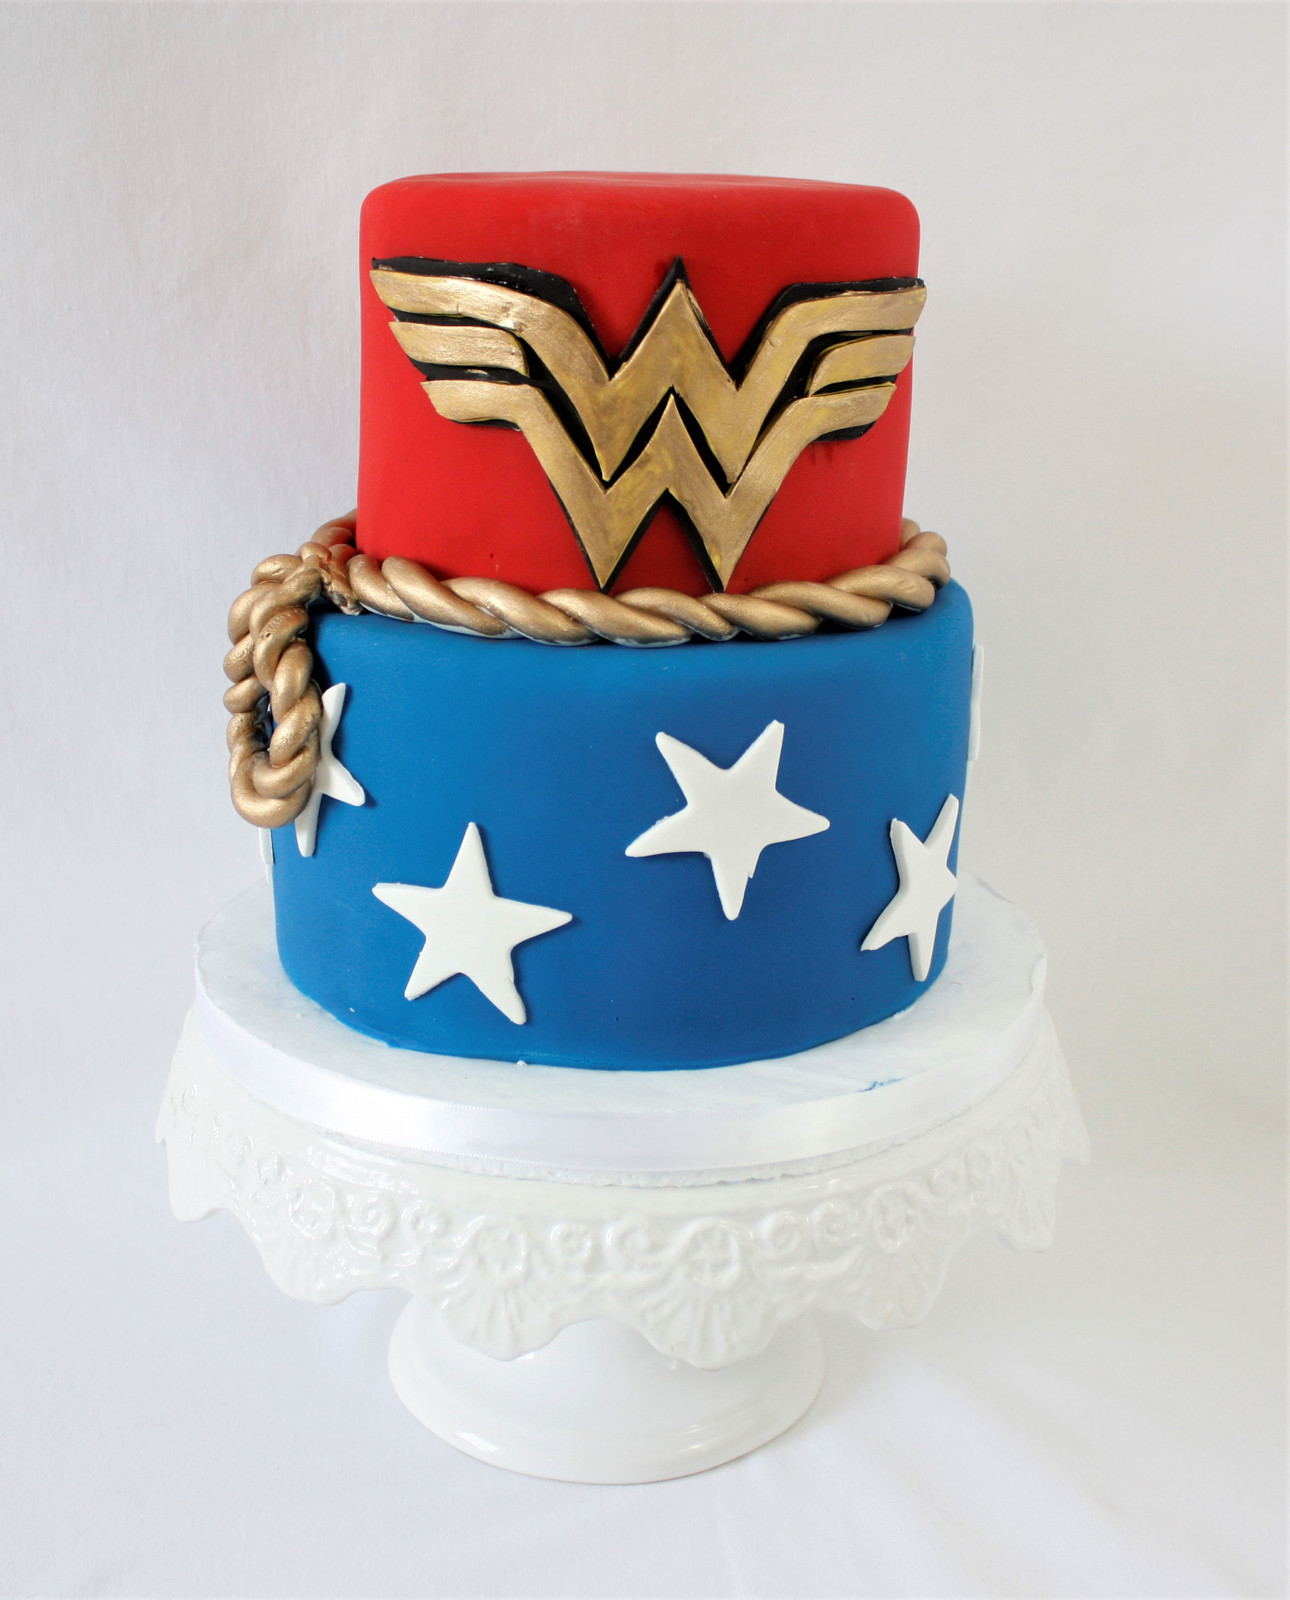 Confection Perfection Adult Cake Designs